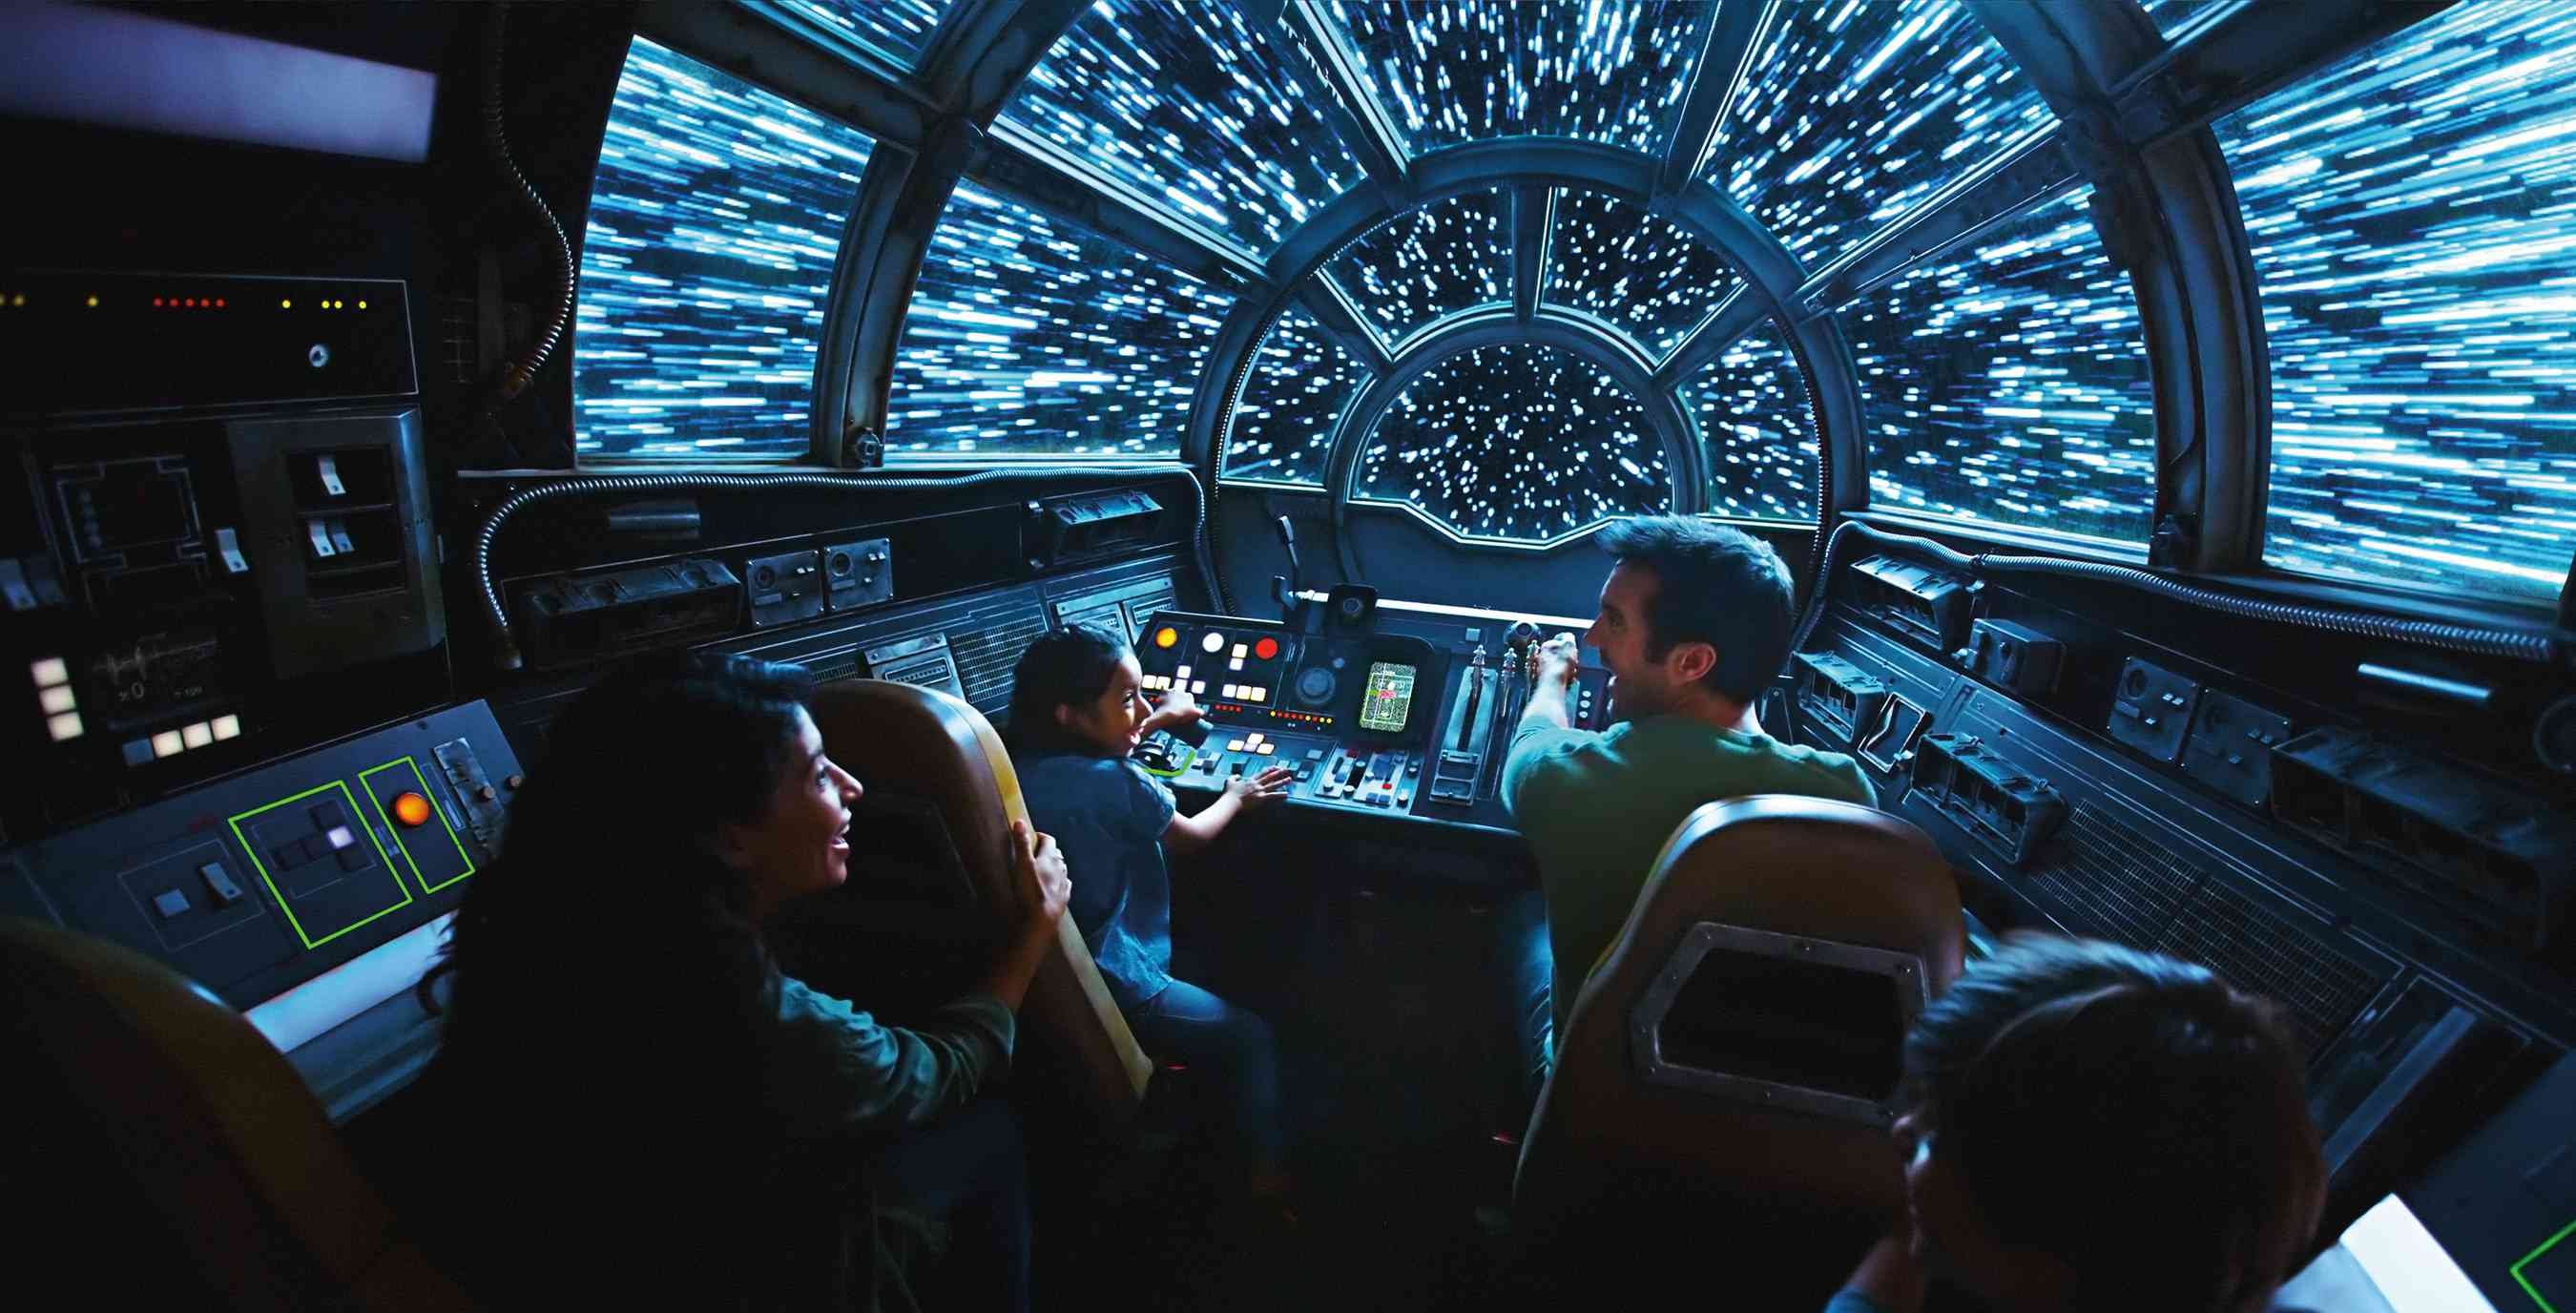 Jump to Hyperspace on the Millennium Falcon at Disneyland